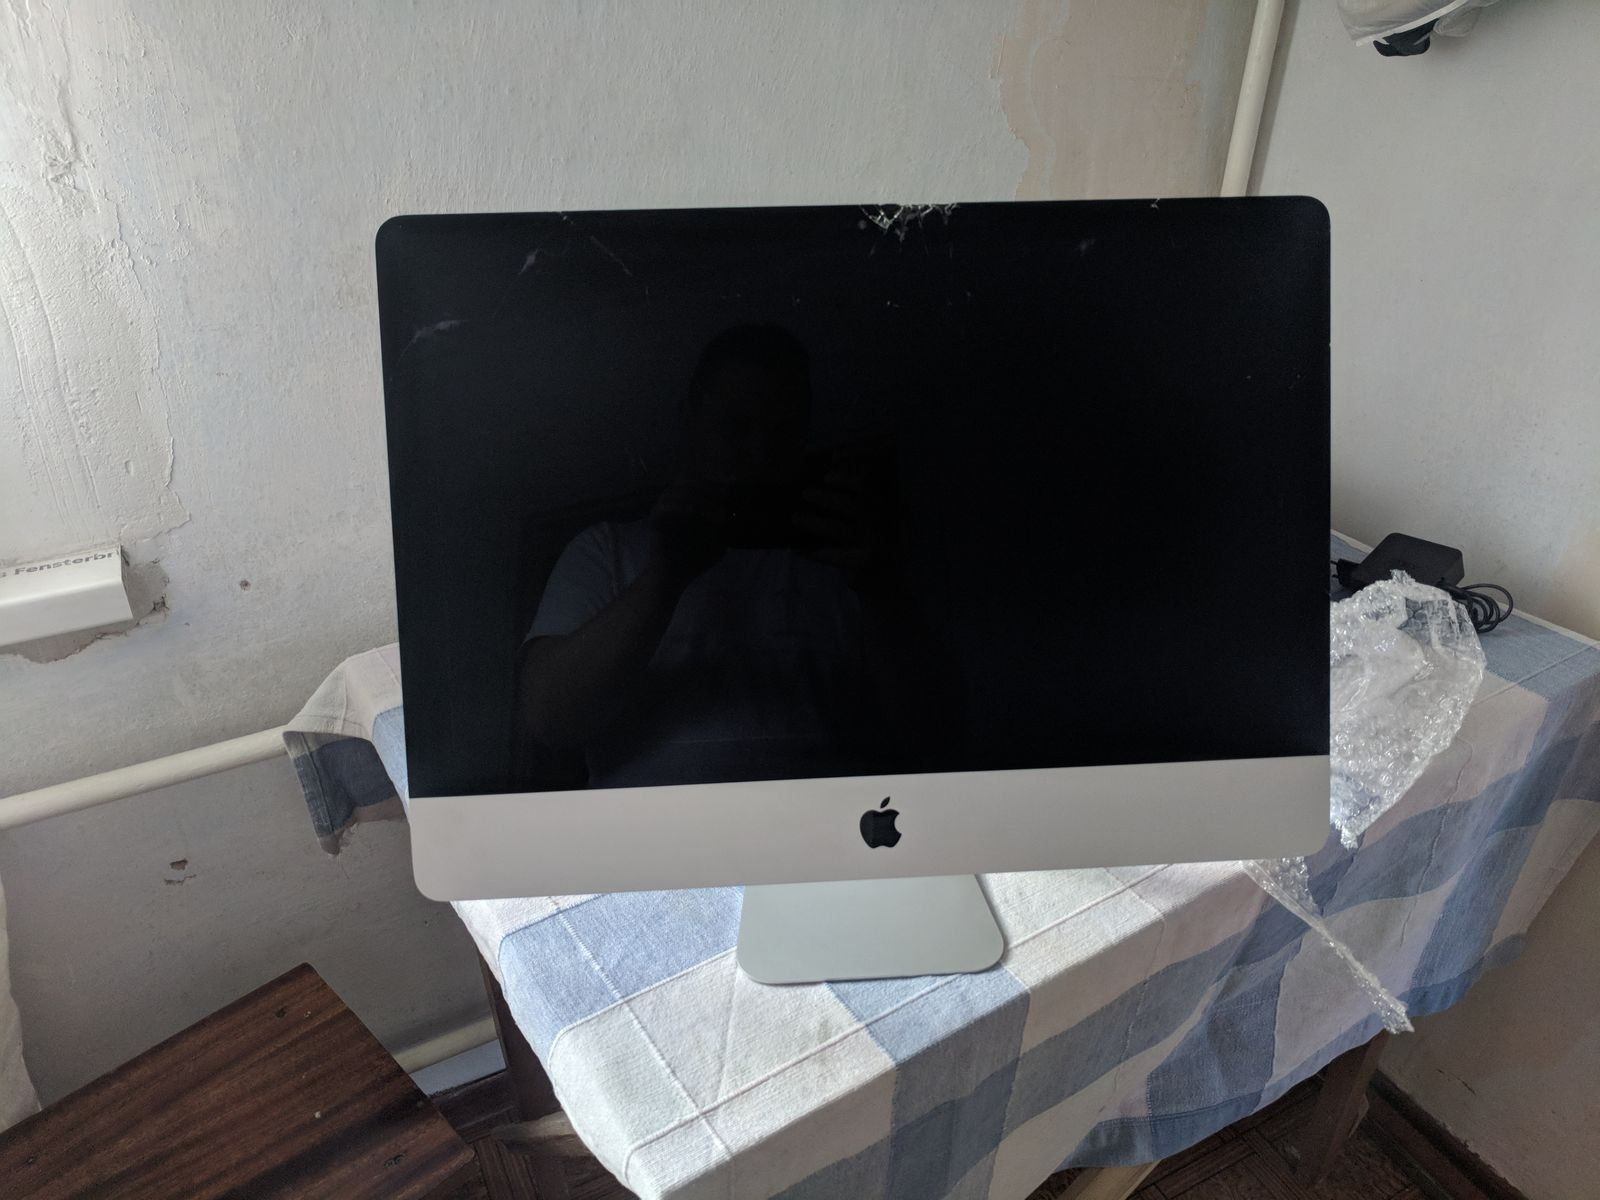 Apple iMac 21.5 Late 2013, Intel Core i5 3,2 GHz, 8 GB DDR3L, 1 TB